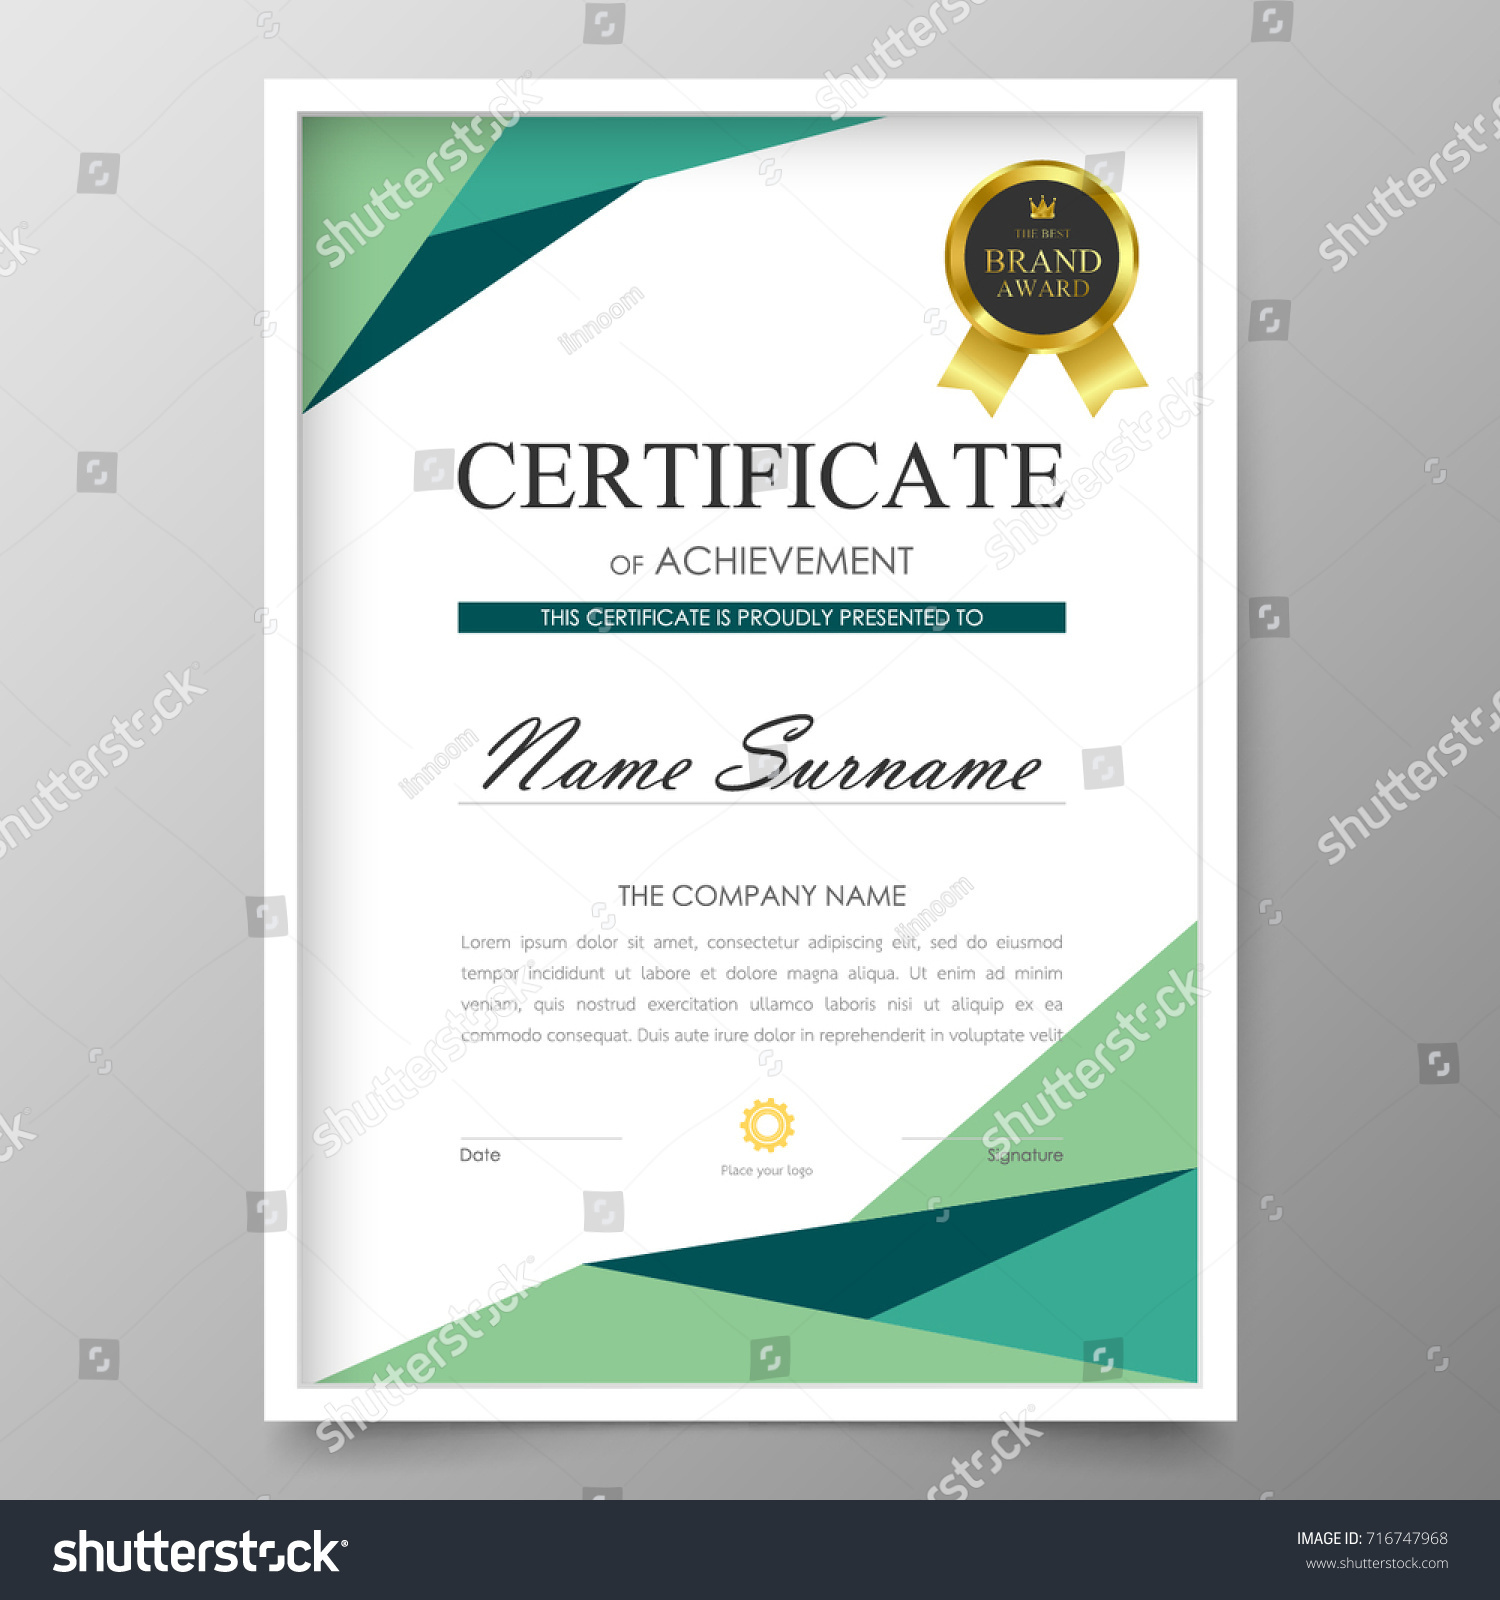 certificate premium template awards diploma background stock  certificate premium template awards diploma background vector modern value design and layout luxurious cover leaflet